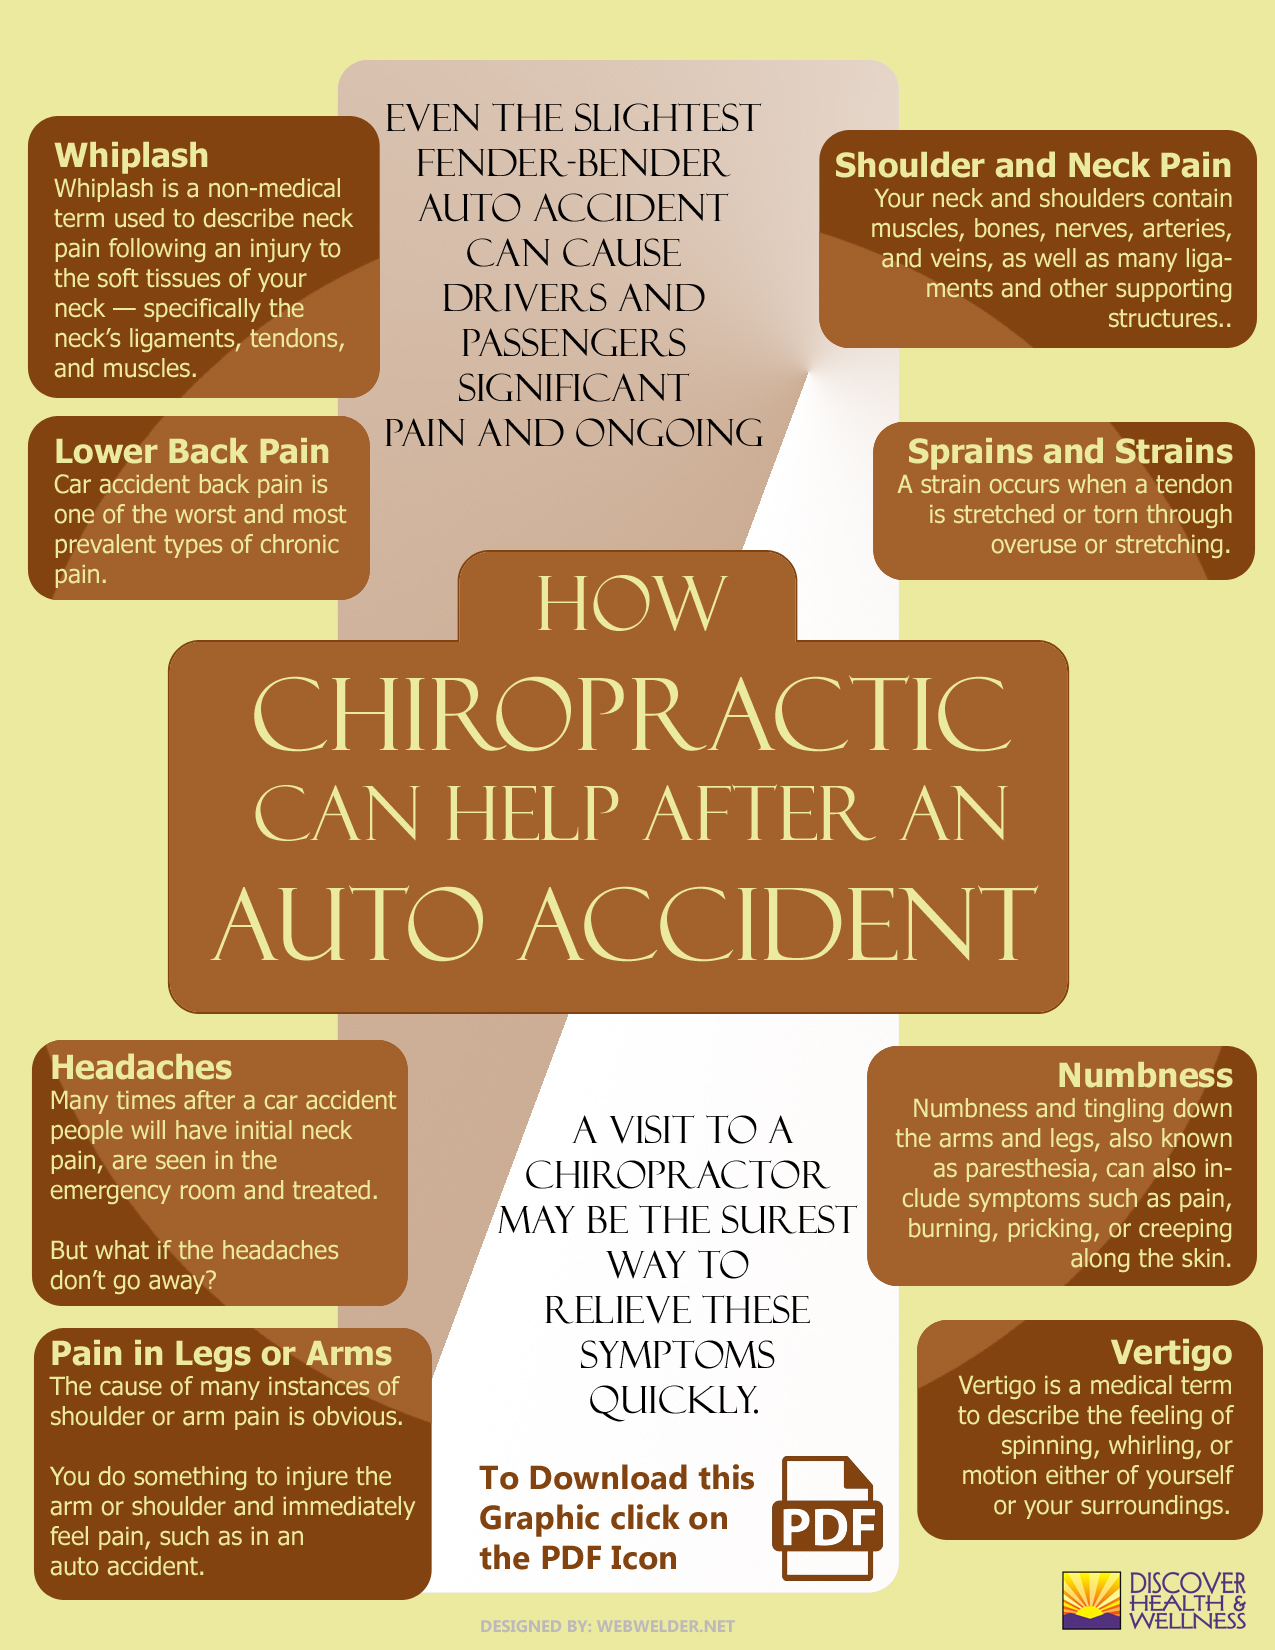 How Chiropractic Can Help After An Auto Accident